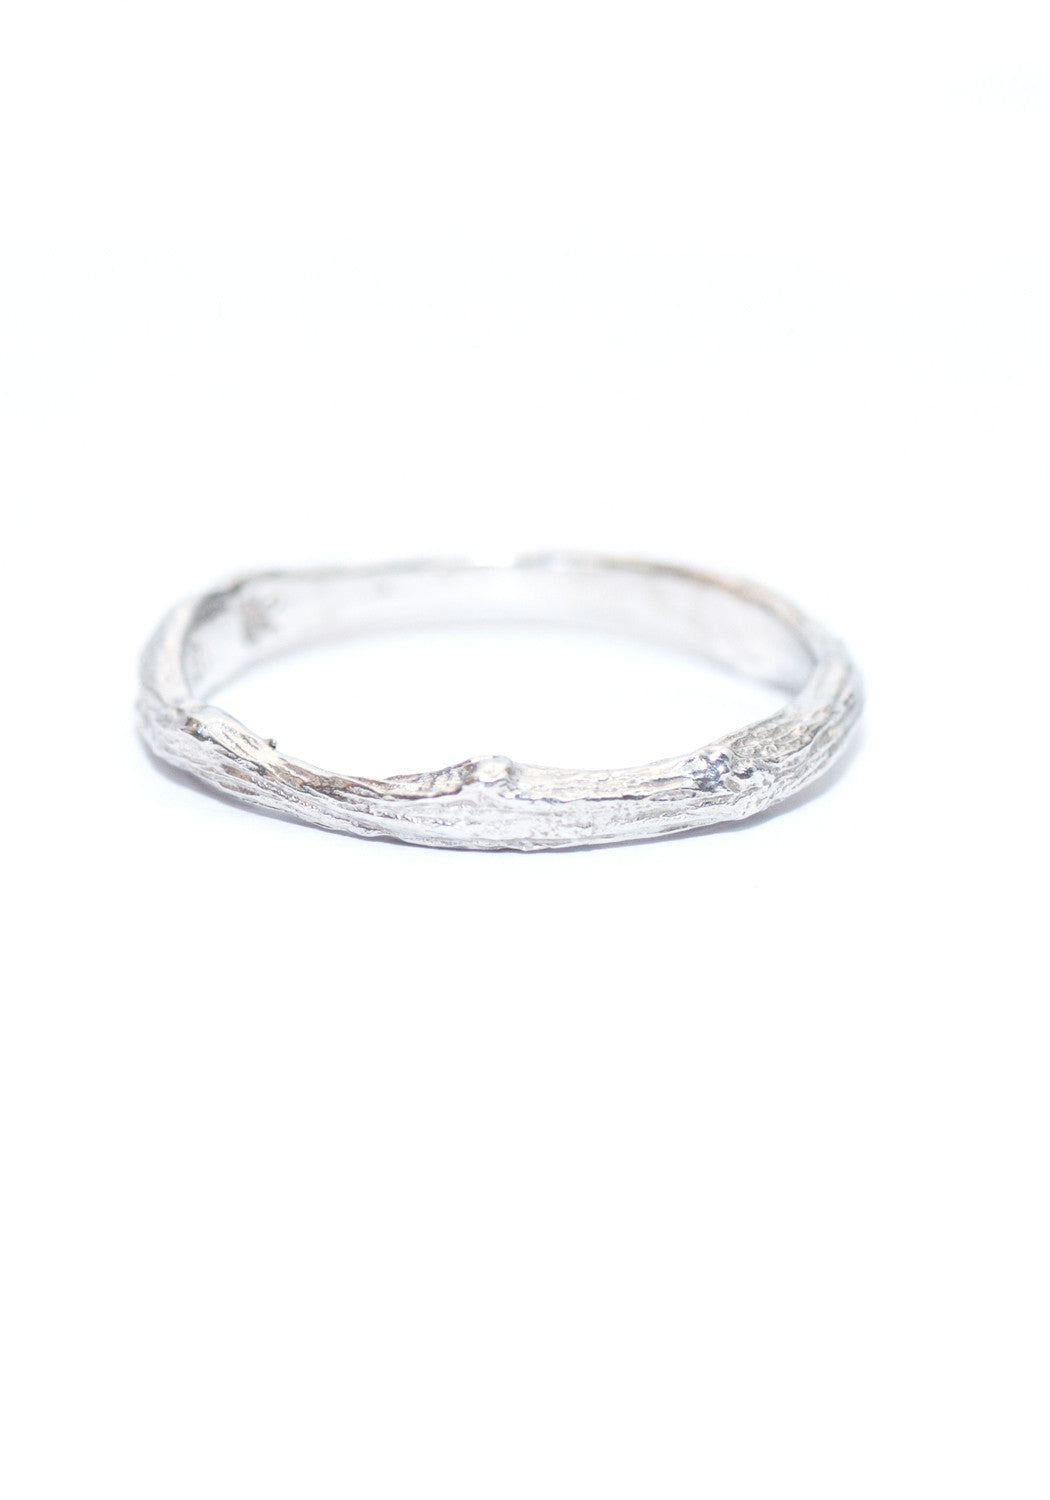 K. Brunini Small White Gold Twig Ring